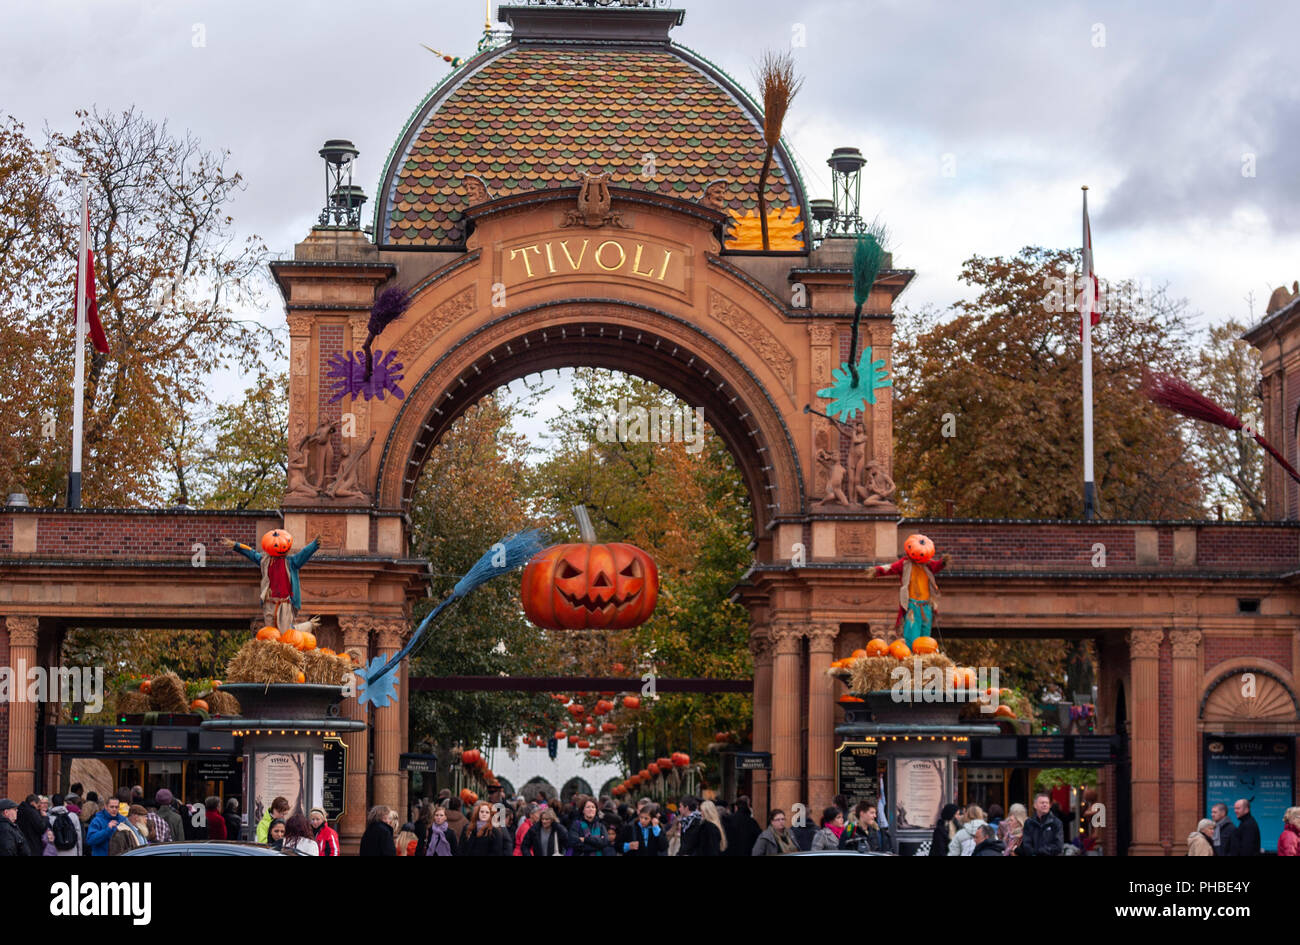 In The Tivoli Gardens High Resolution Stock Photography And Images Alamy